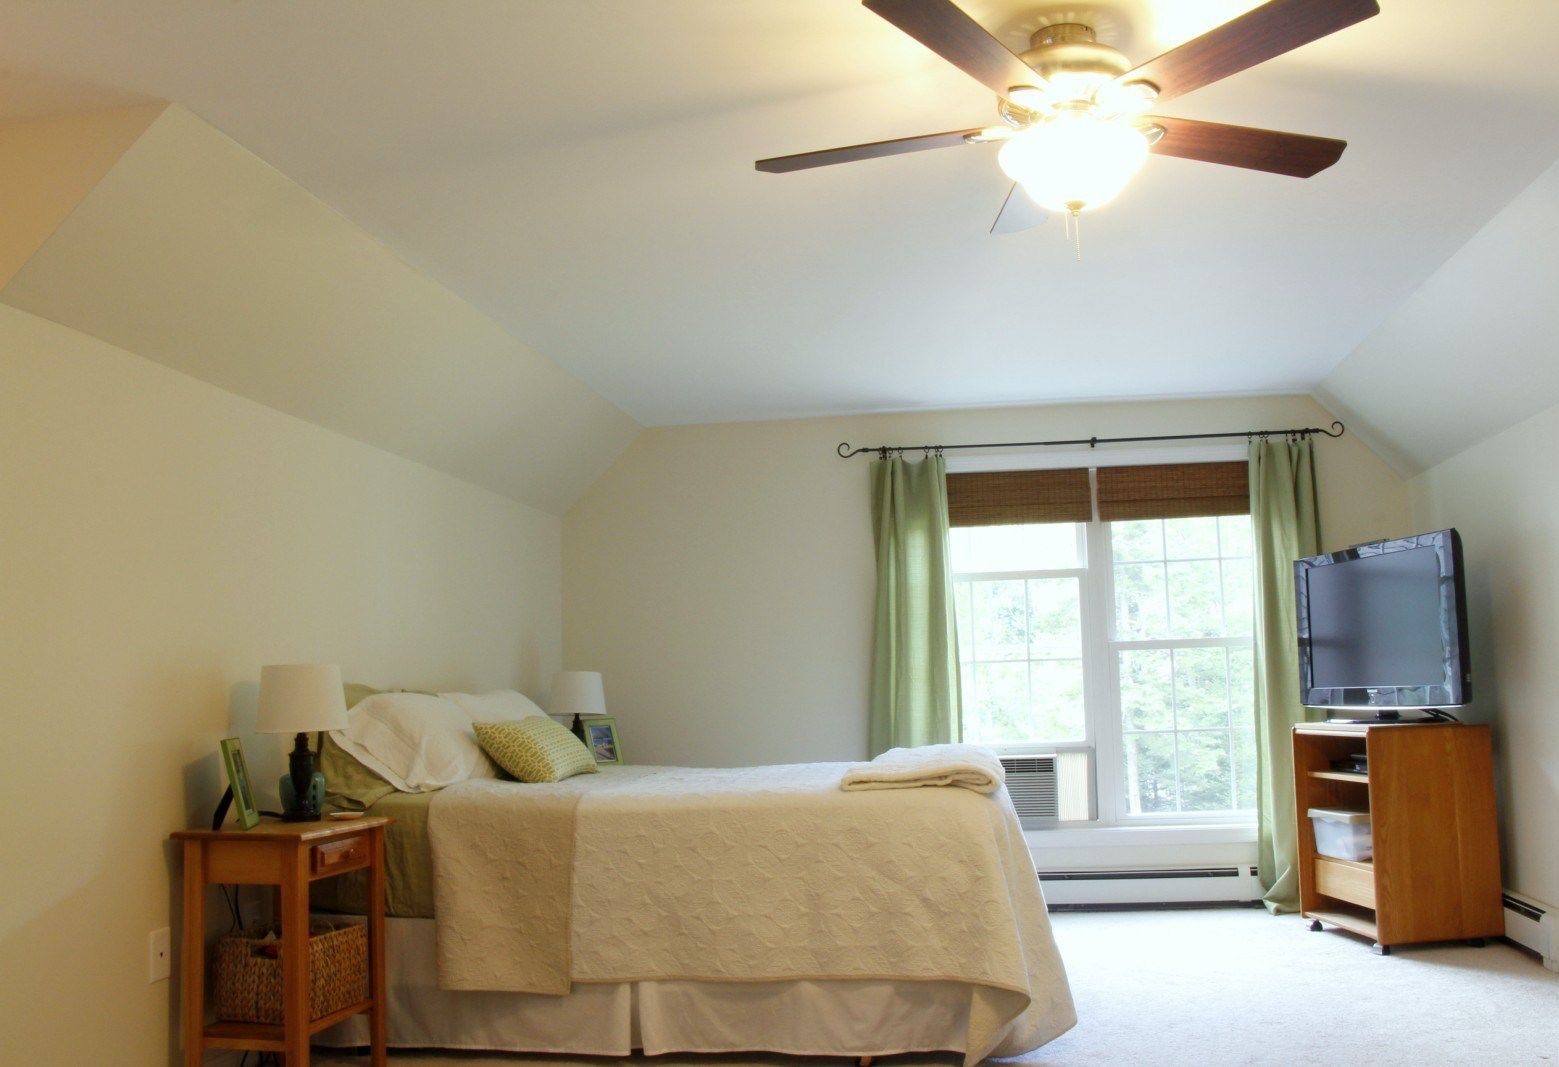 Ideas About Quiet Ceiling Fans Fan And For Bedroom